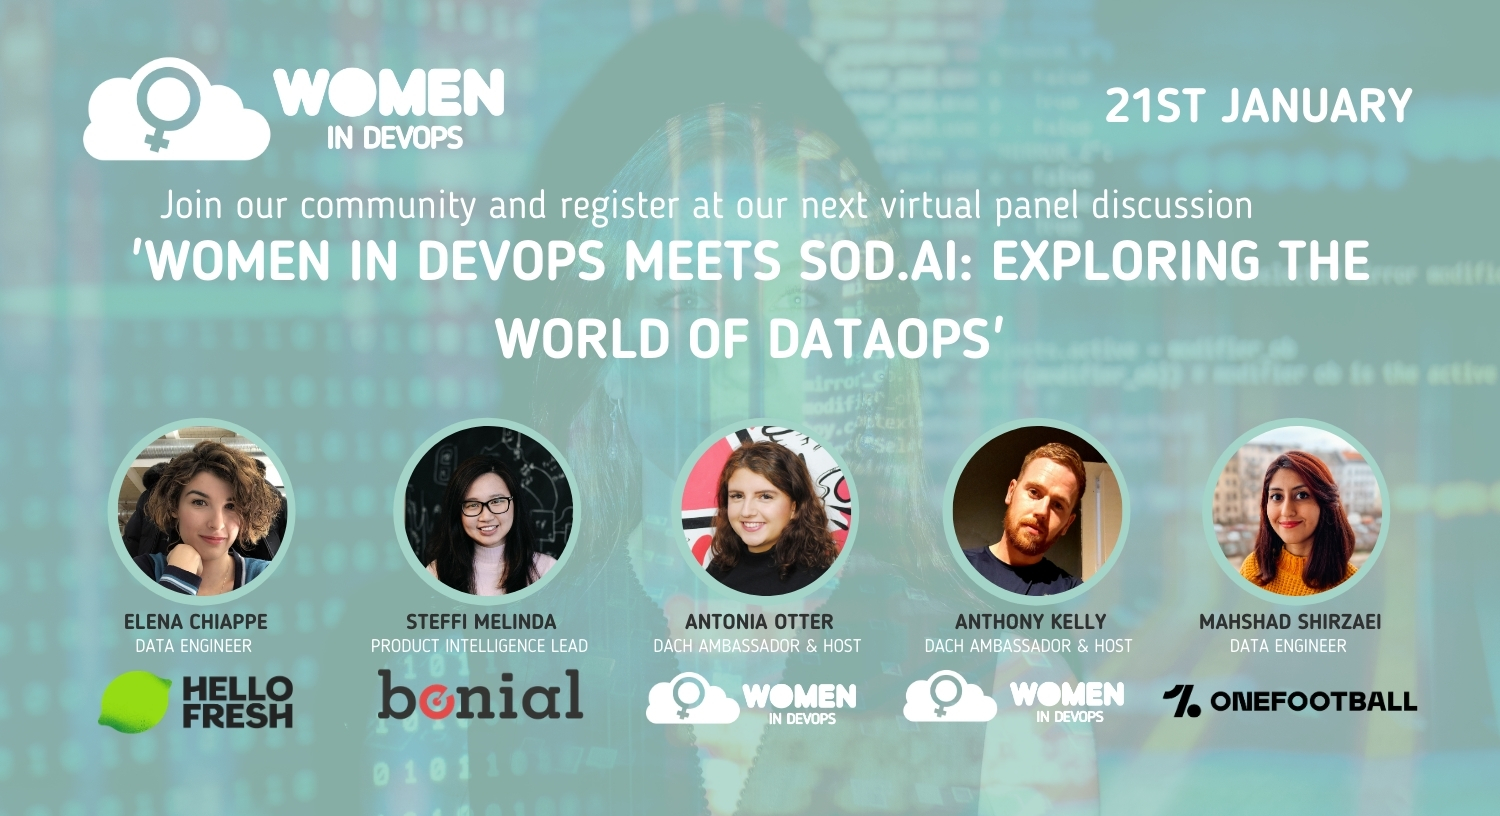 Webinar #10 - Women in DevOps meets SOD.AI: Exploring the World of DataOps